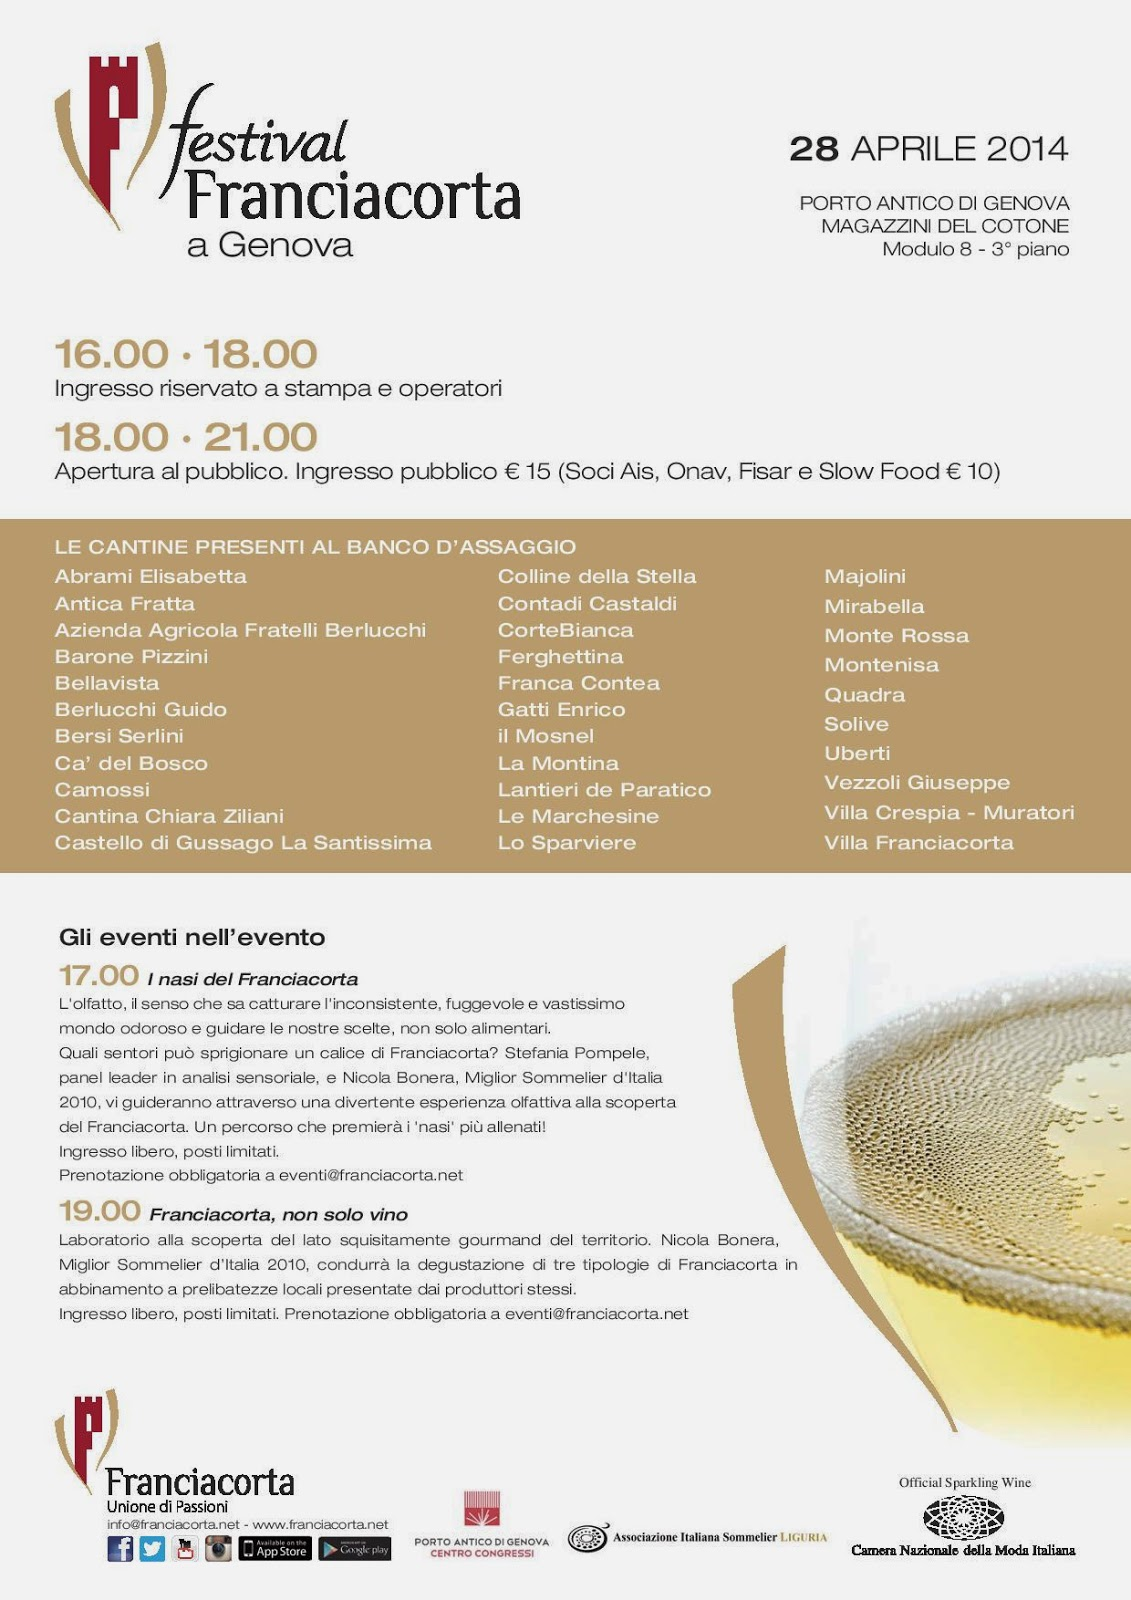 http://www.franciacorta.net/it/document/891/